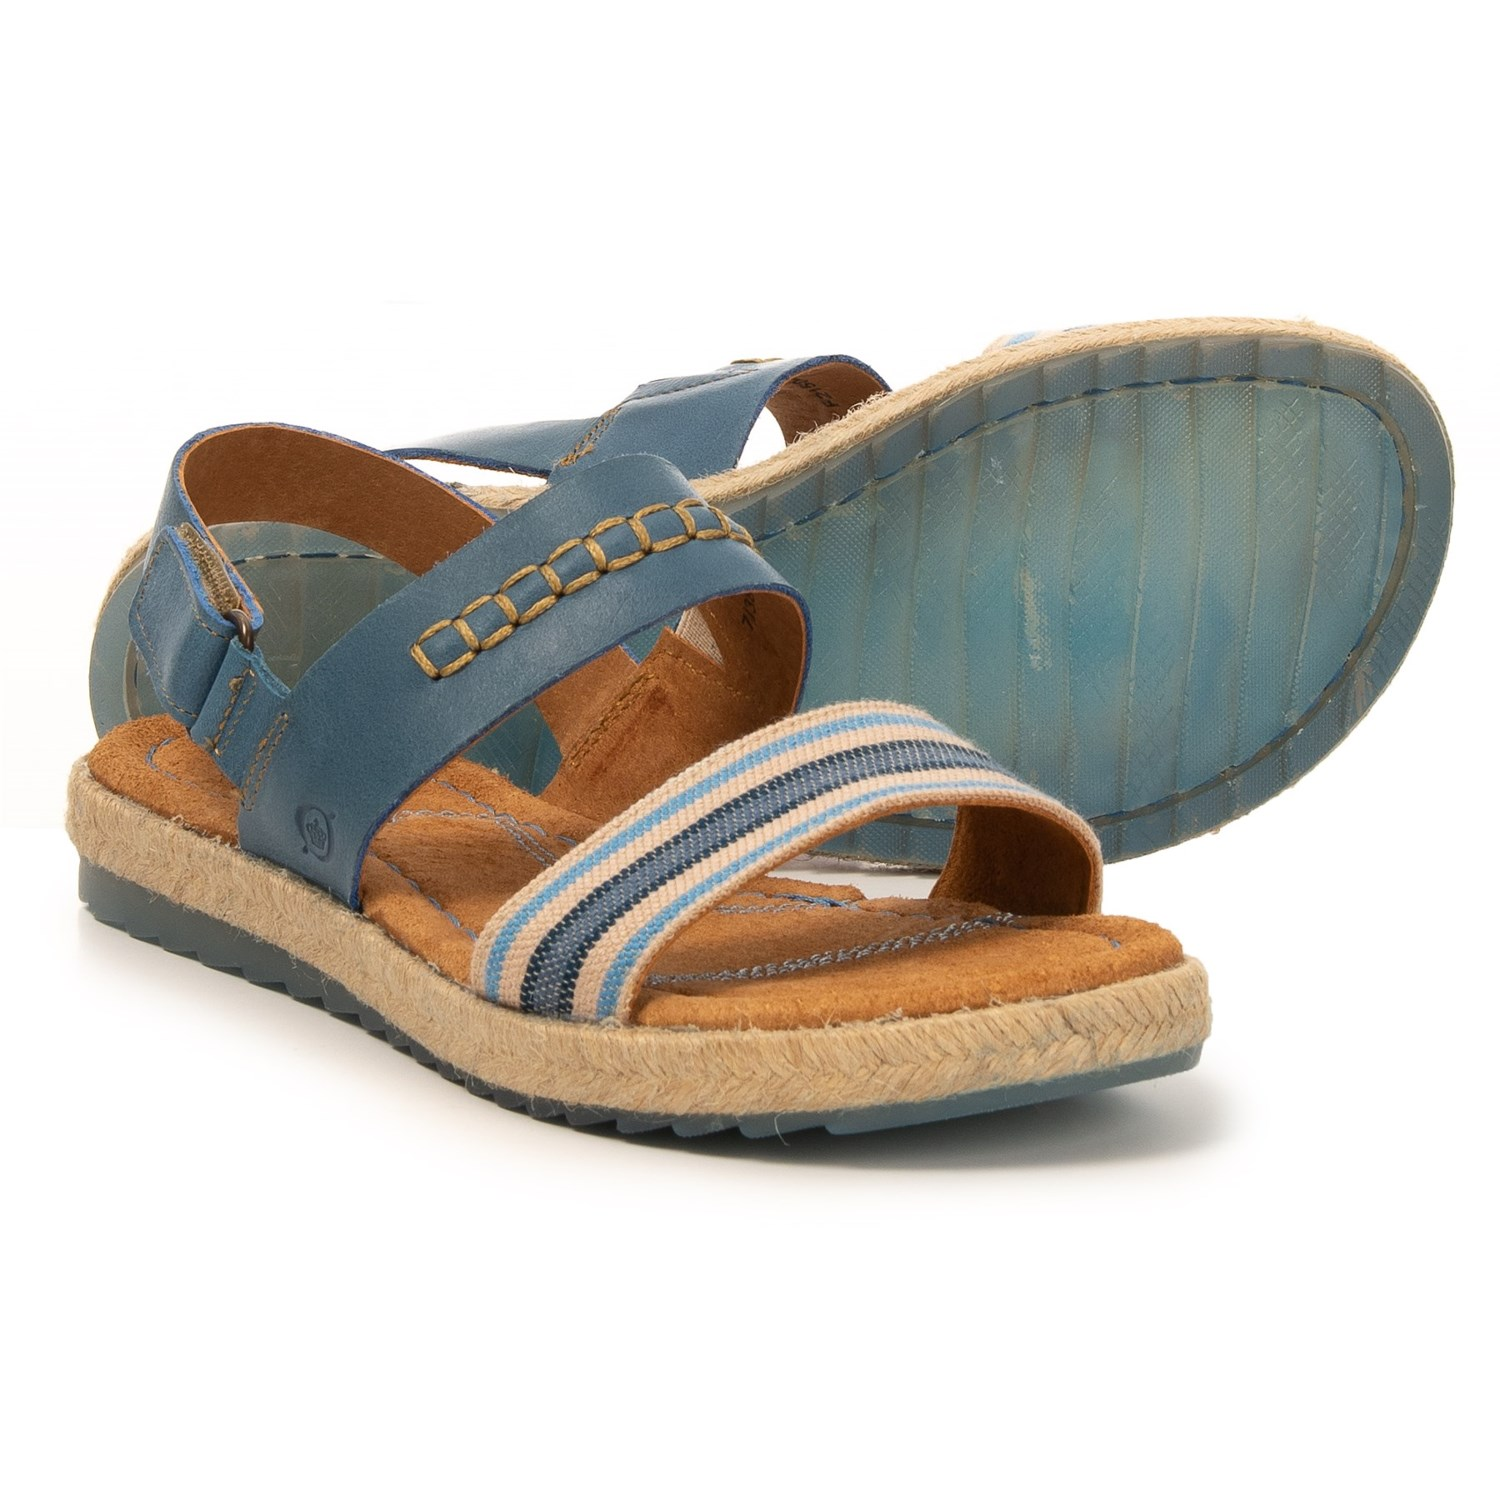 69394a675ab82 Born Vigan Striped Comfort Sling Sandal (For Women) in Blue Stripe ...